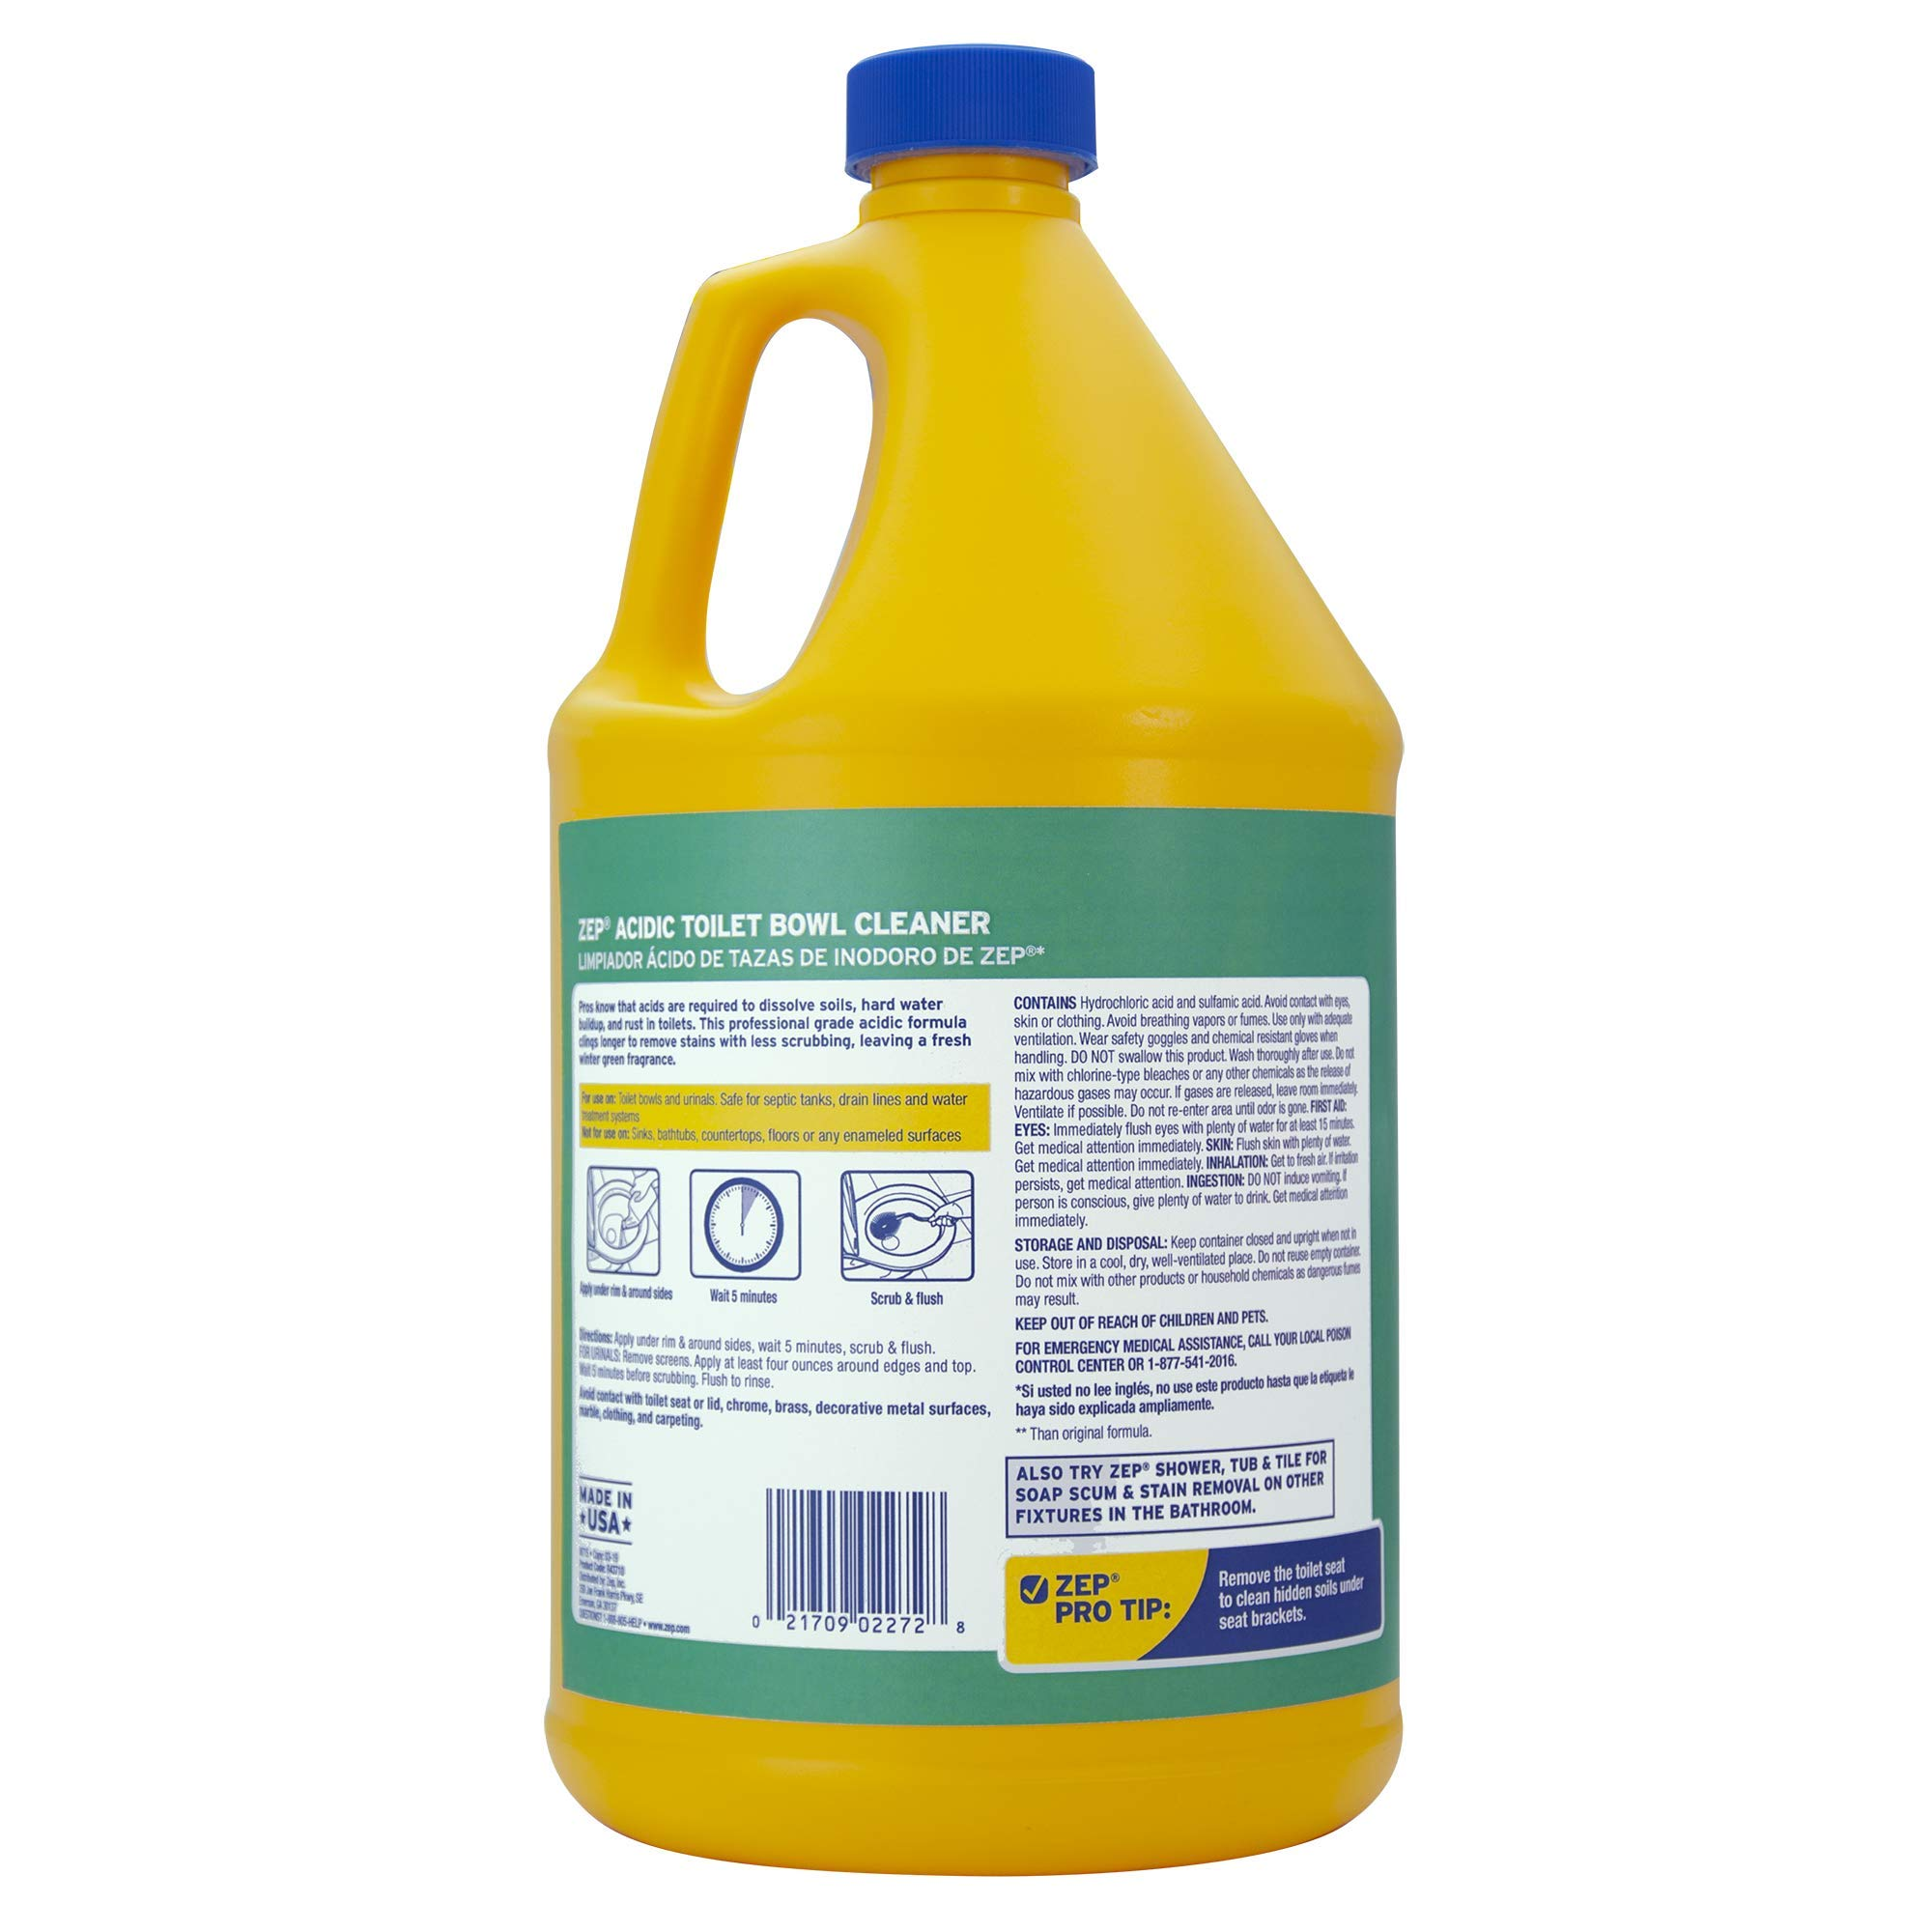 Zep Acidic Toilet Bowl Cleaner 128oz R43710 (Case of 4) - Professional Strength, Thick Gel Clings to dirt and leaves toilets clean by Zep